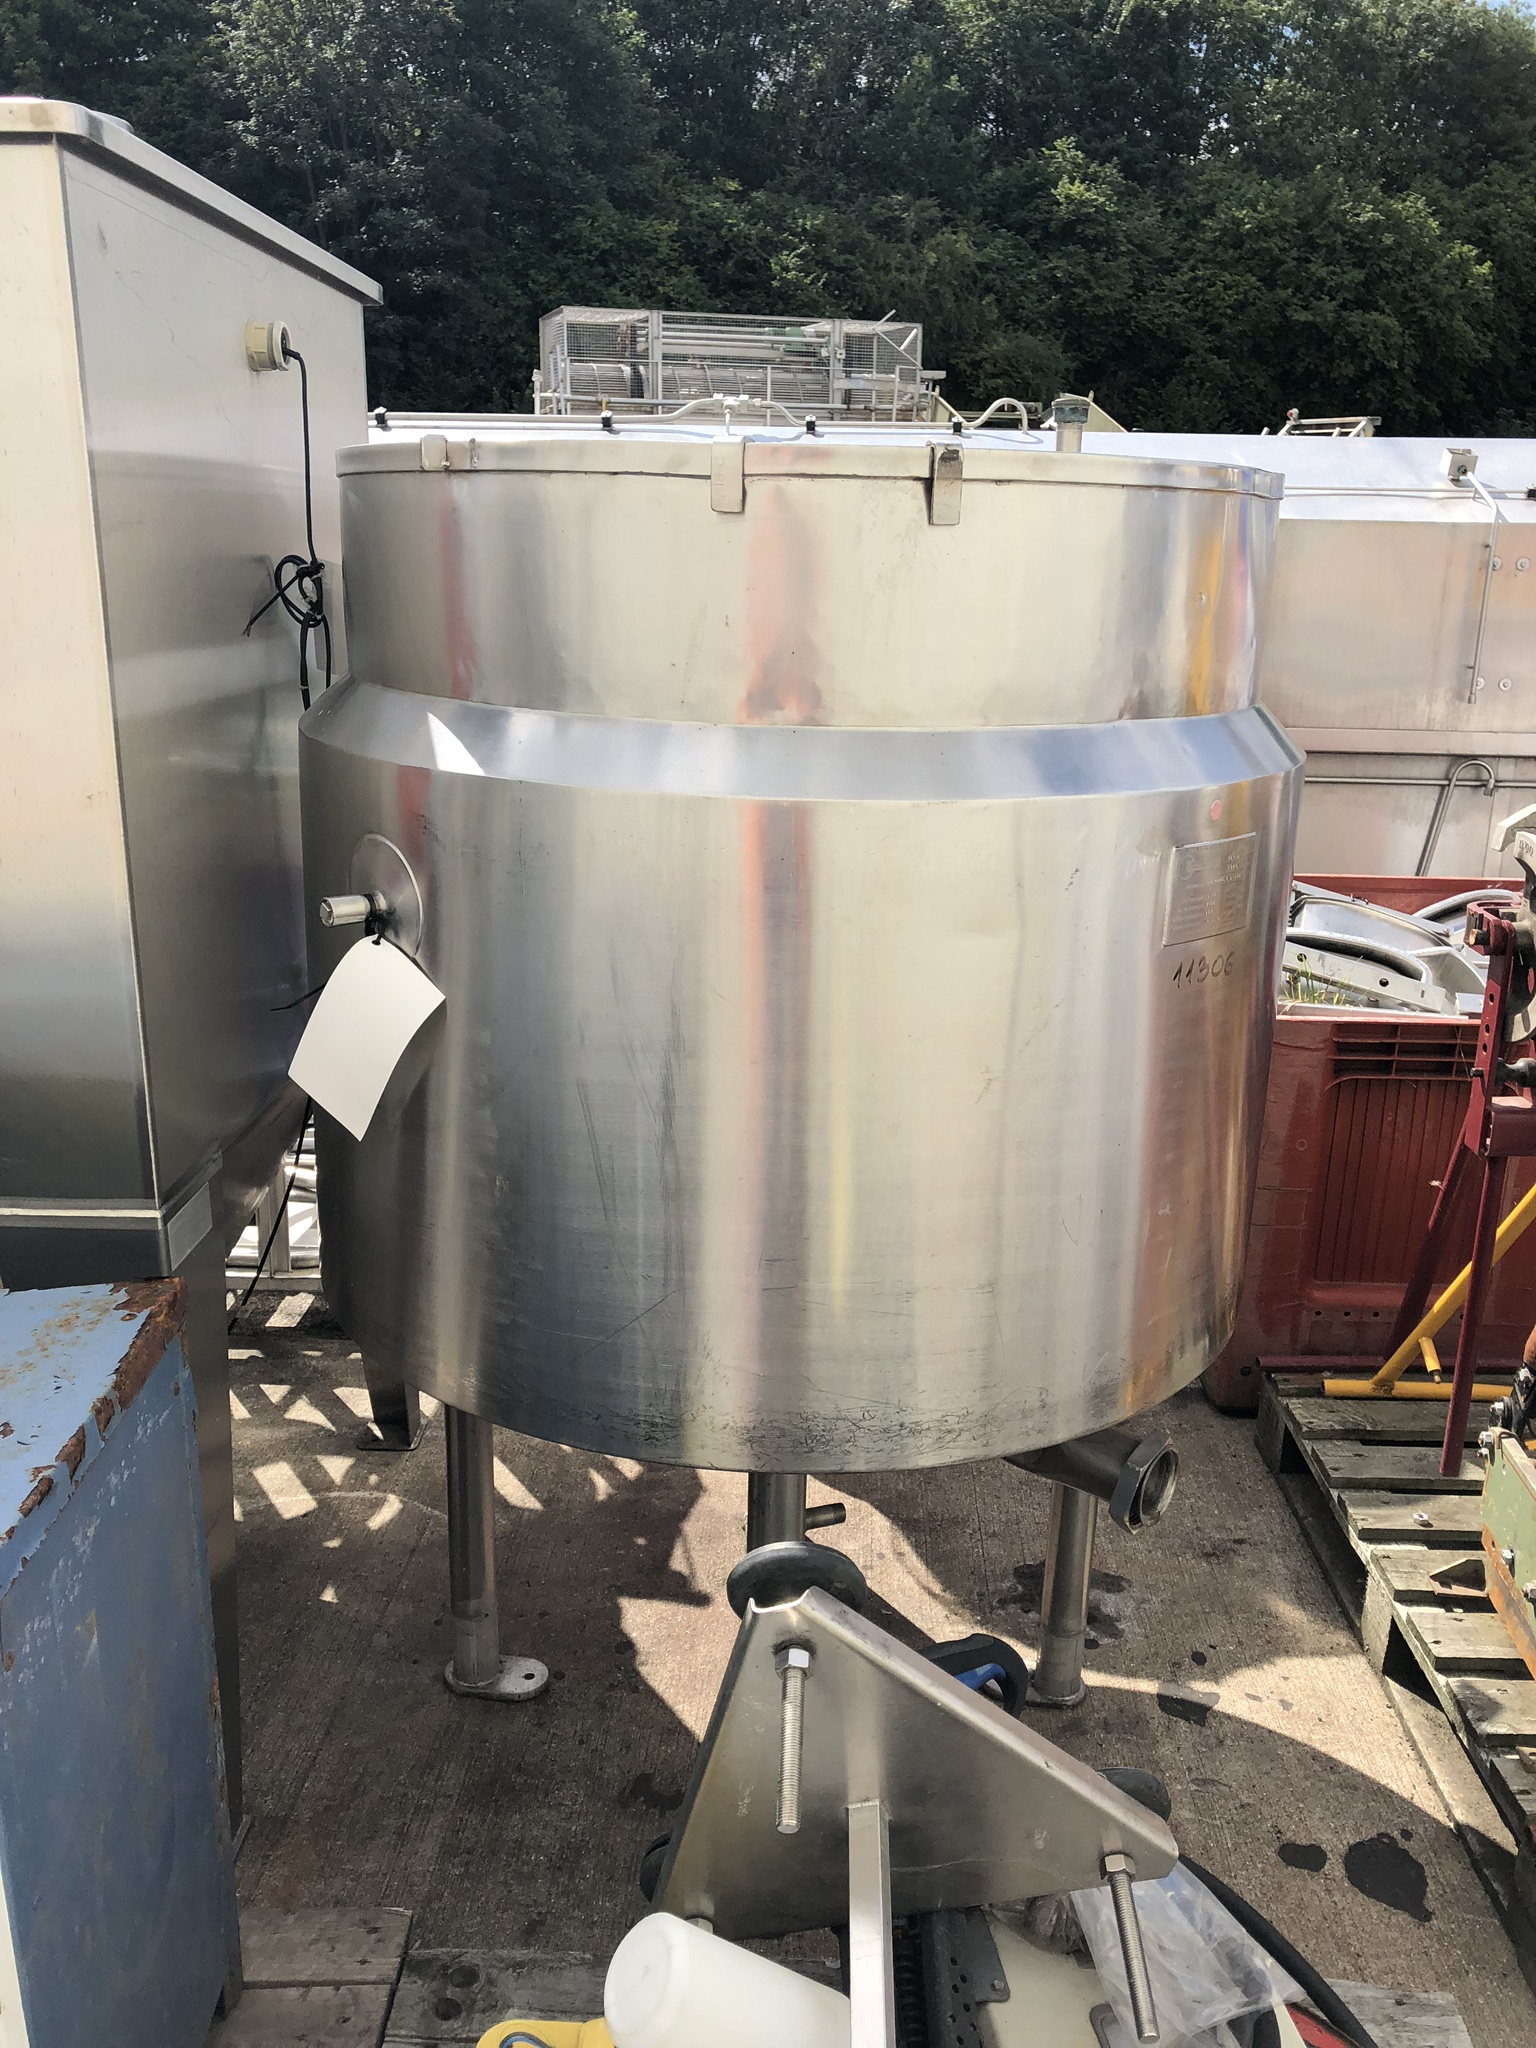 Fairfield Hytec 400L Jacketed Tank, machine no. 34.10045.2.J3580, year of manufacture 1996, 1m